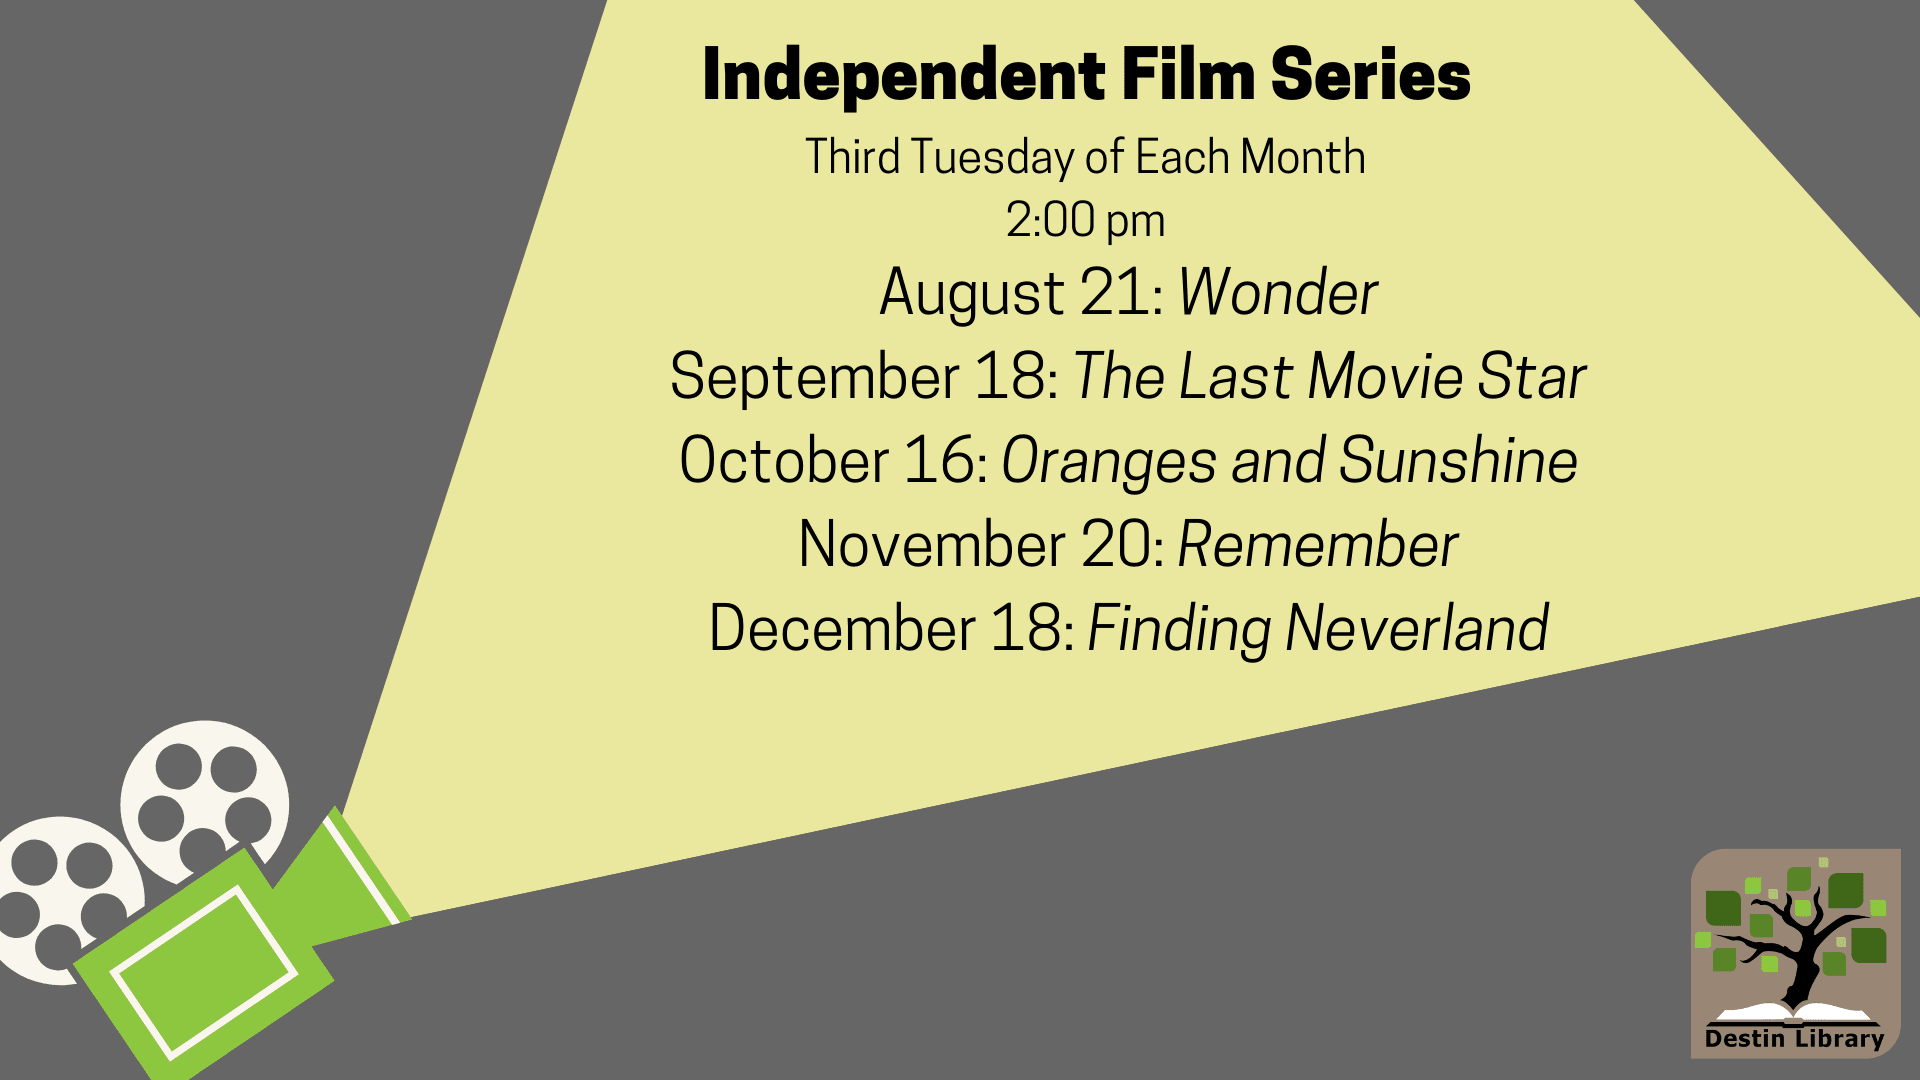 Independent Film Series Schedule for Fall 2018